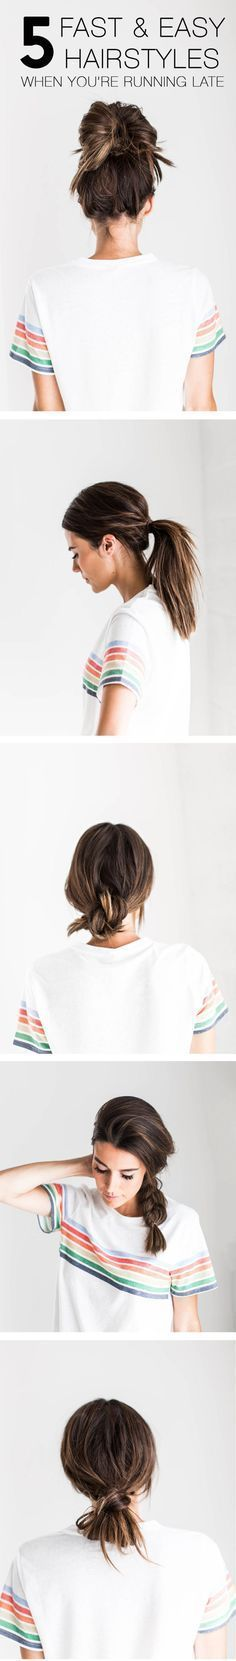 My easy go to hairstyles for those busy mornings! #MessyHairstylesBraids #MessyHairstylesLong